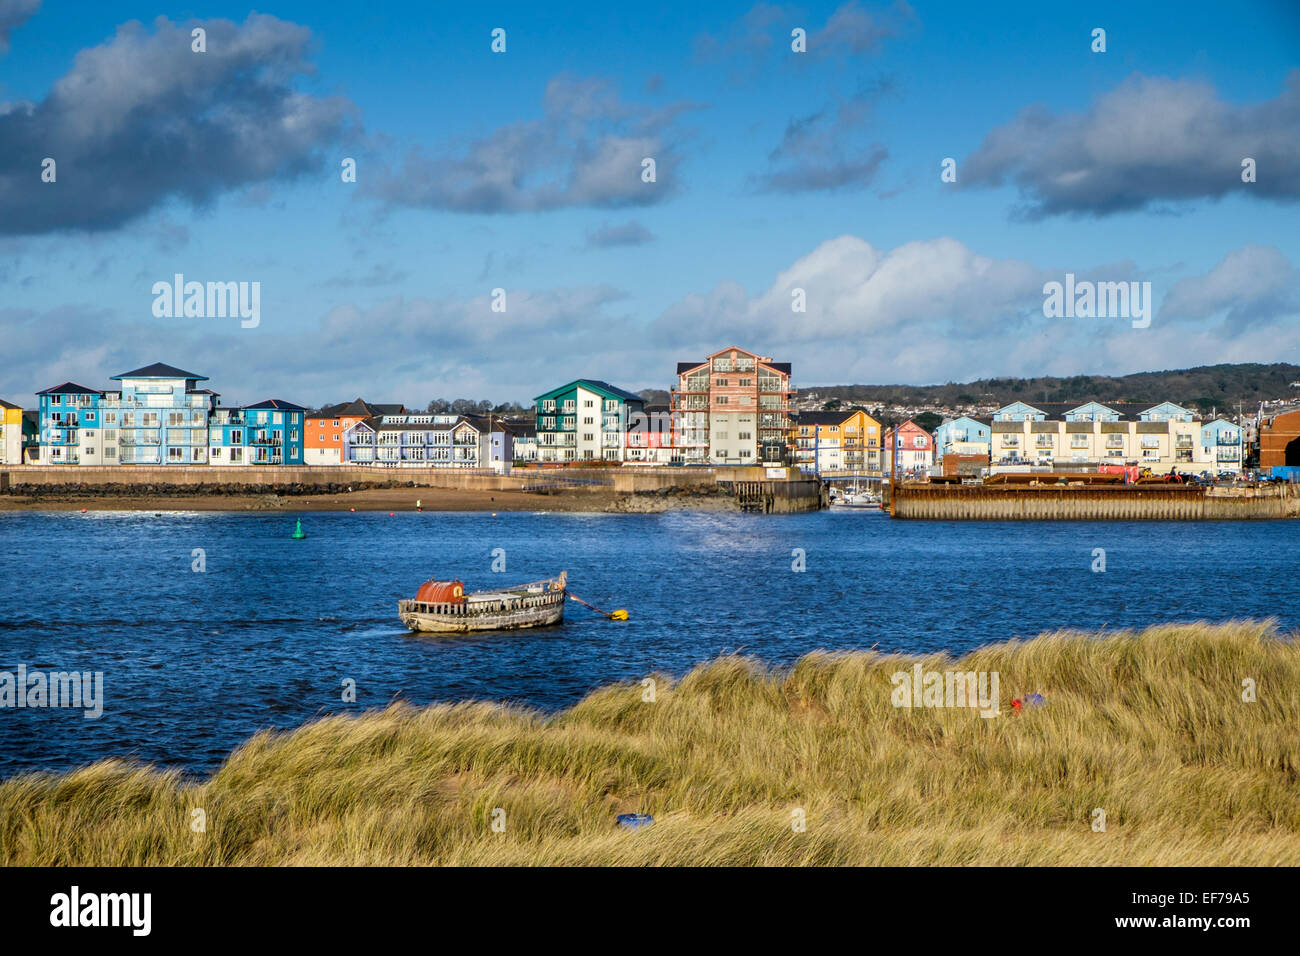 Water side apartments on the Exe estuary in Exmouth, Devon viewed from Dawlish Warren nature reserve - Stock Image